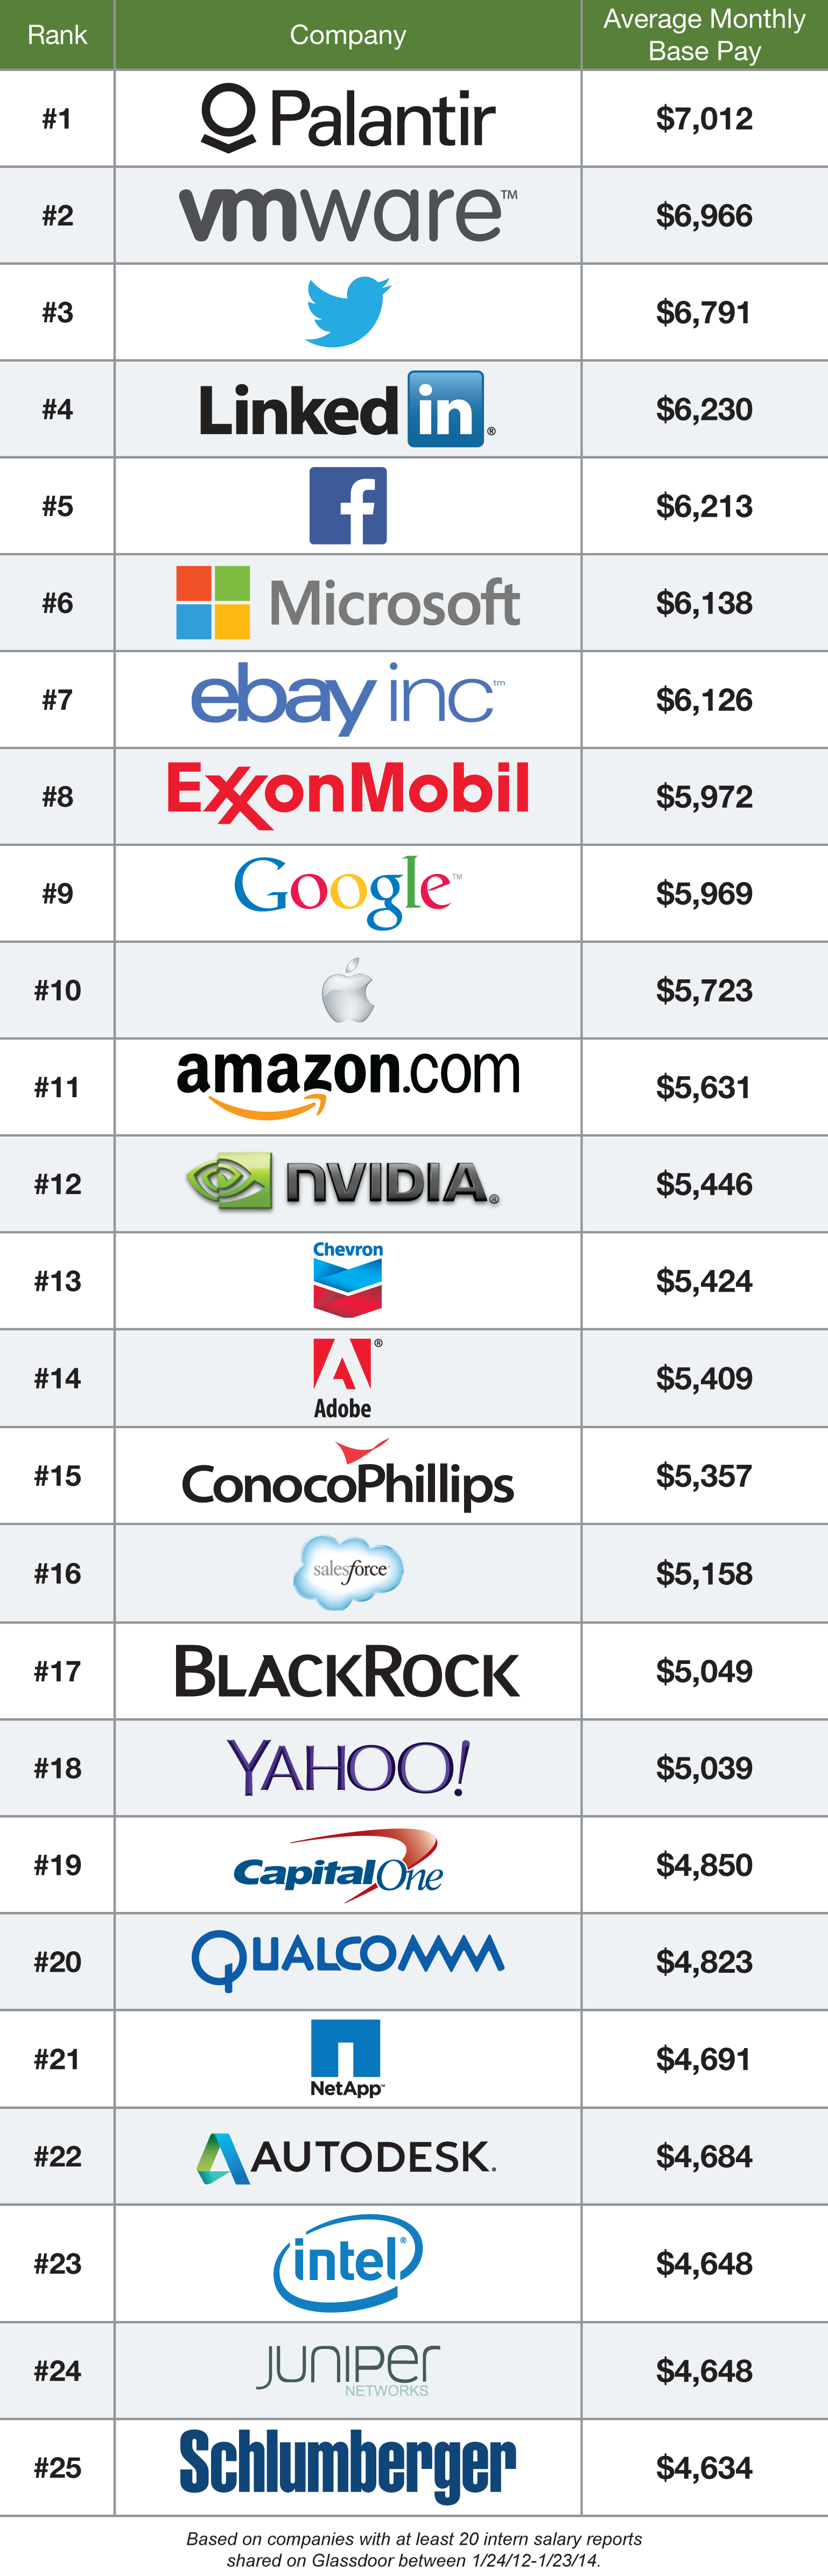 25 Highest Paying Companies For Interns 2014